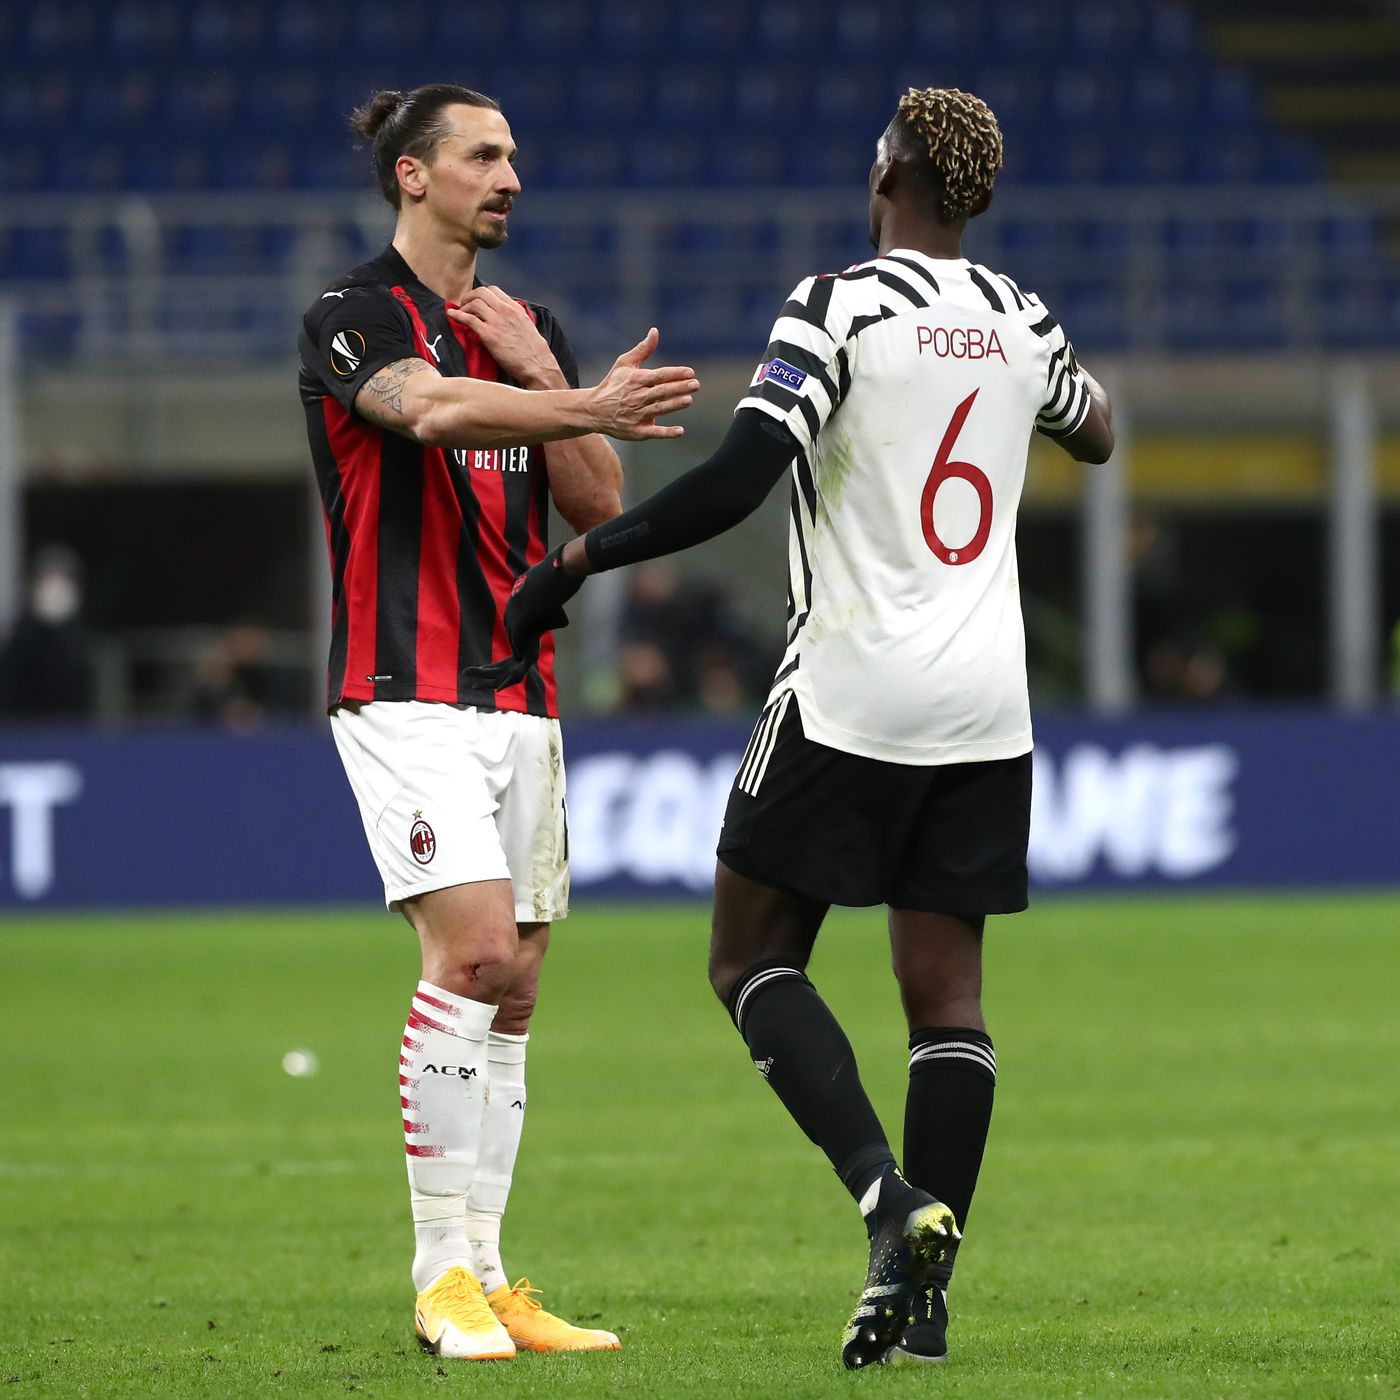 Rossoneri Round Up for Mar 19: AC Milan Knocked Out Of Europa League In 1-0  Loss To Manchester United - The AC Milan Offside